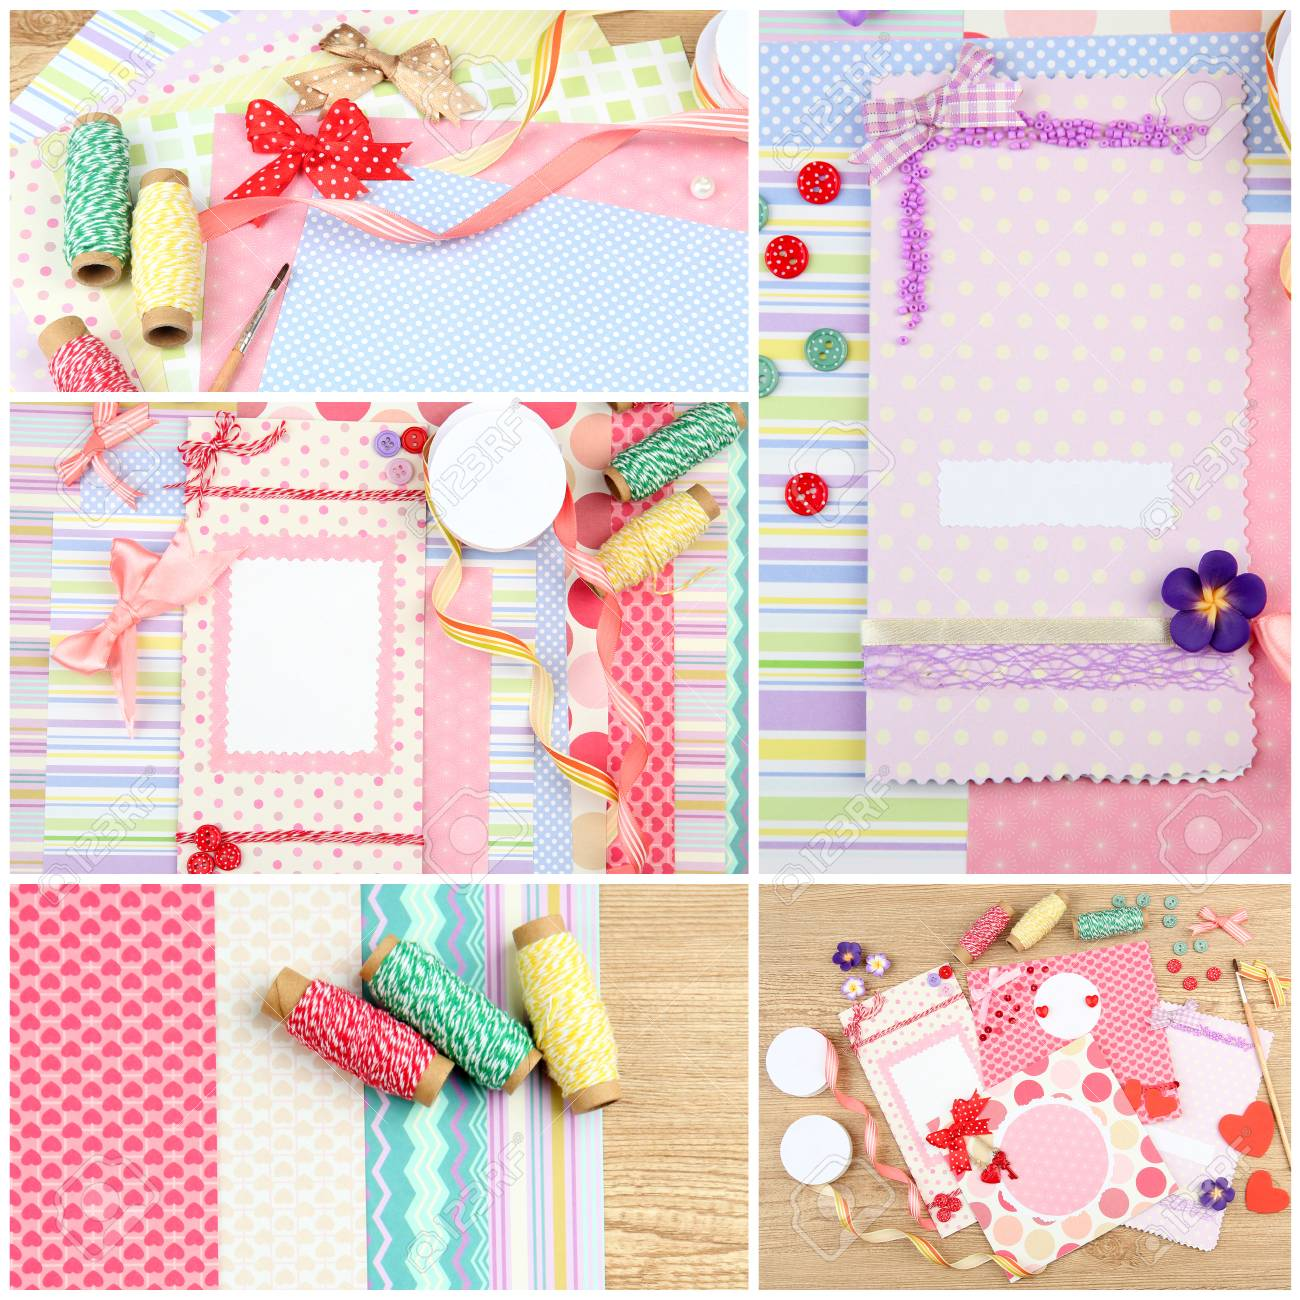 Scrapbooking Collage Handmade Greeting Card Hobby And Handicraft